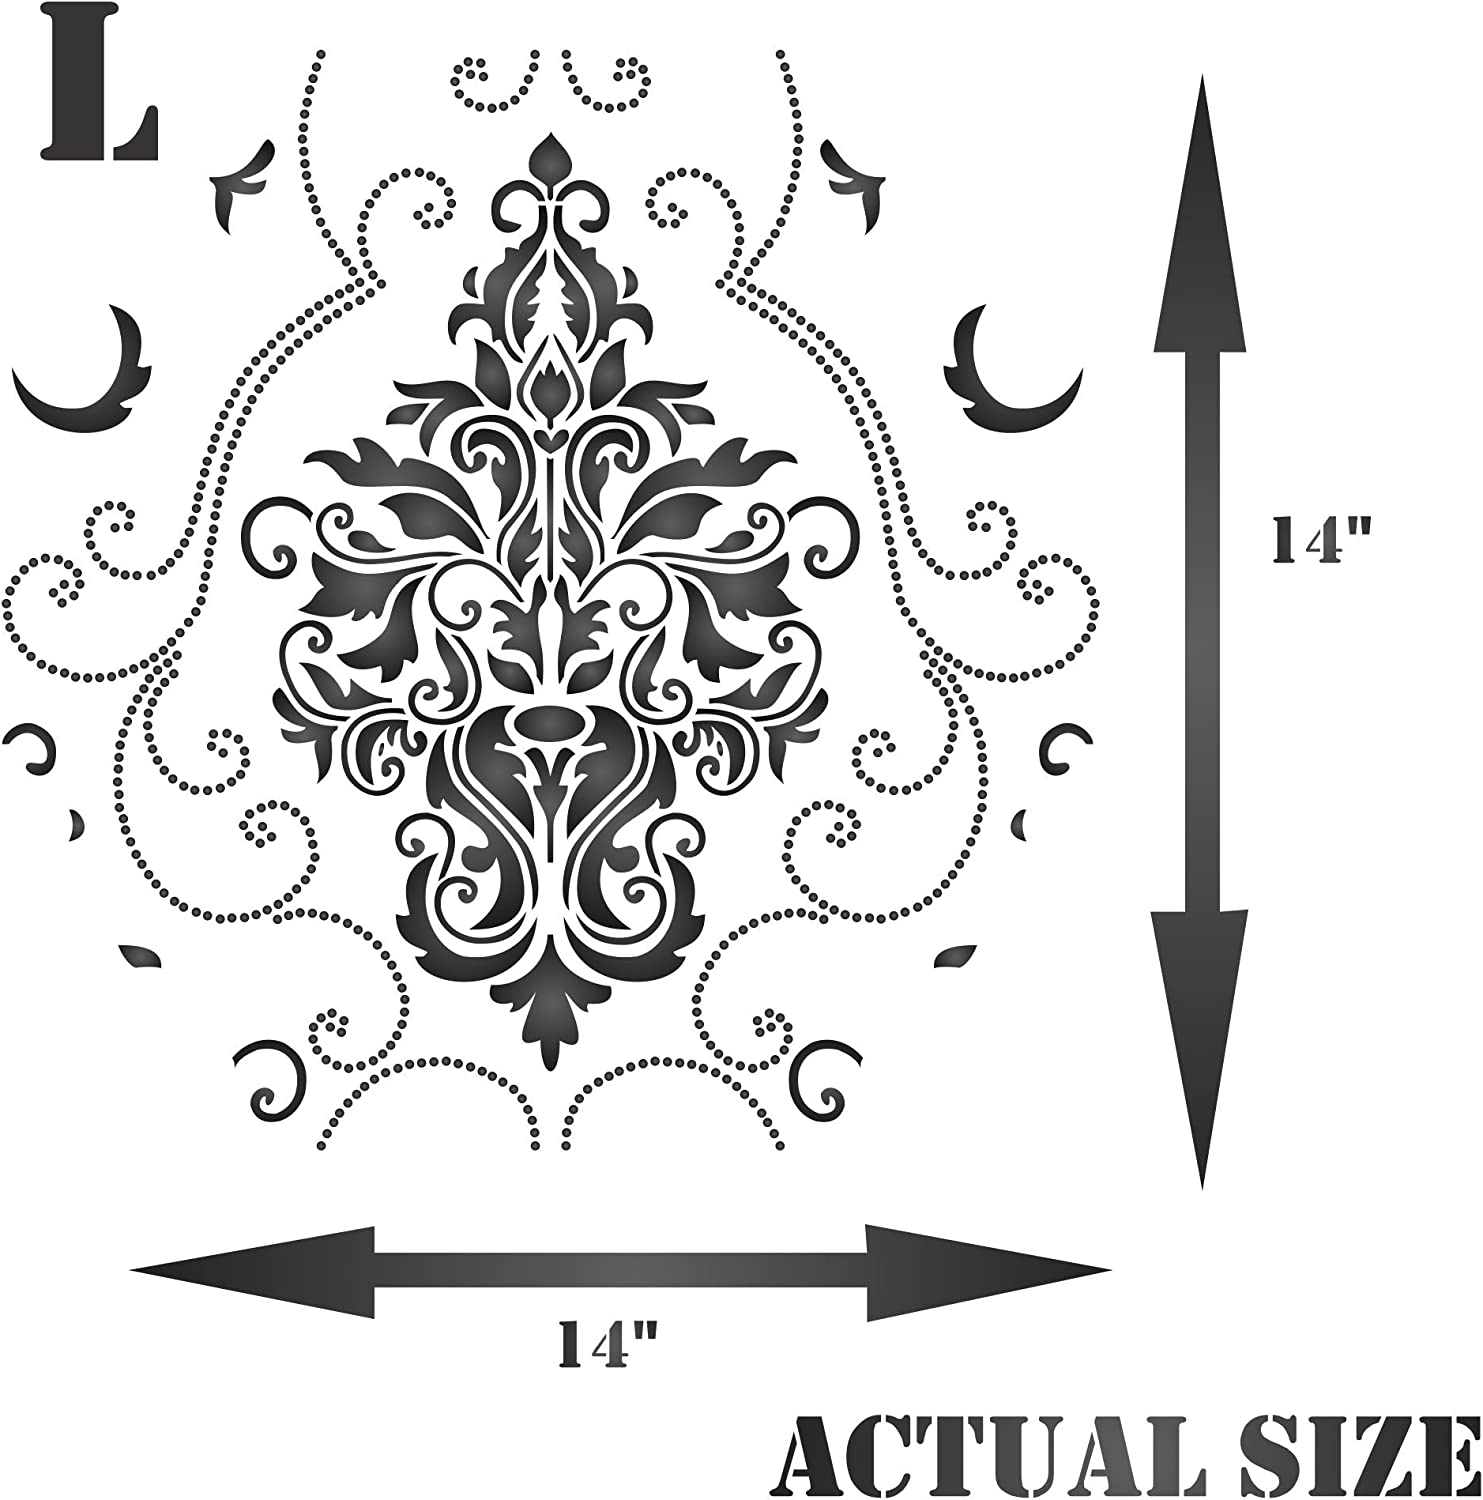 M Use On Paper Projects Scrapbook Journal Walls Floors Fabric Furniture Glass Wood Etc. 28 x 25.5cm Damask Stencil - Reusable Large Floral Allover Pattern Wall Stencil Template